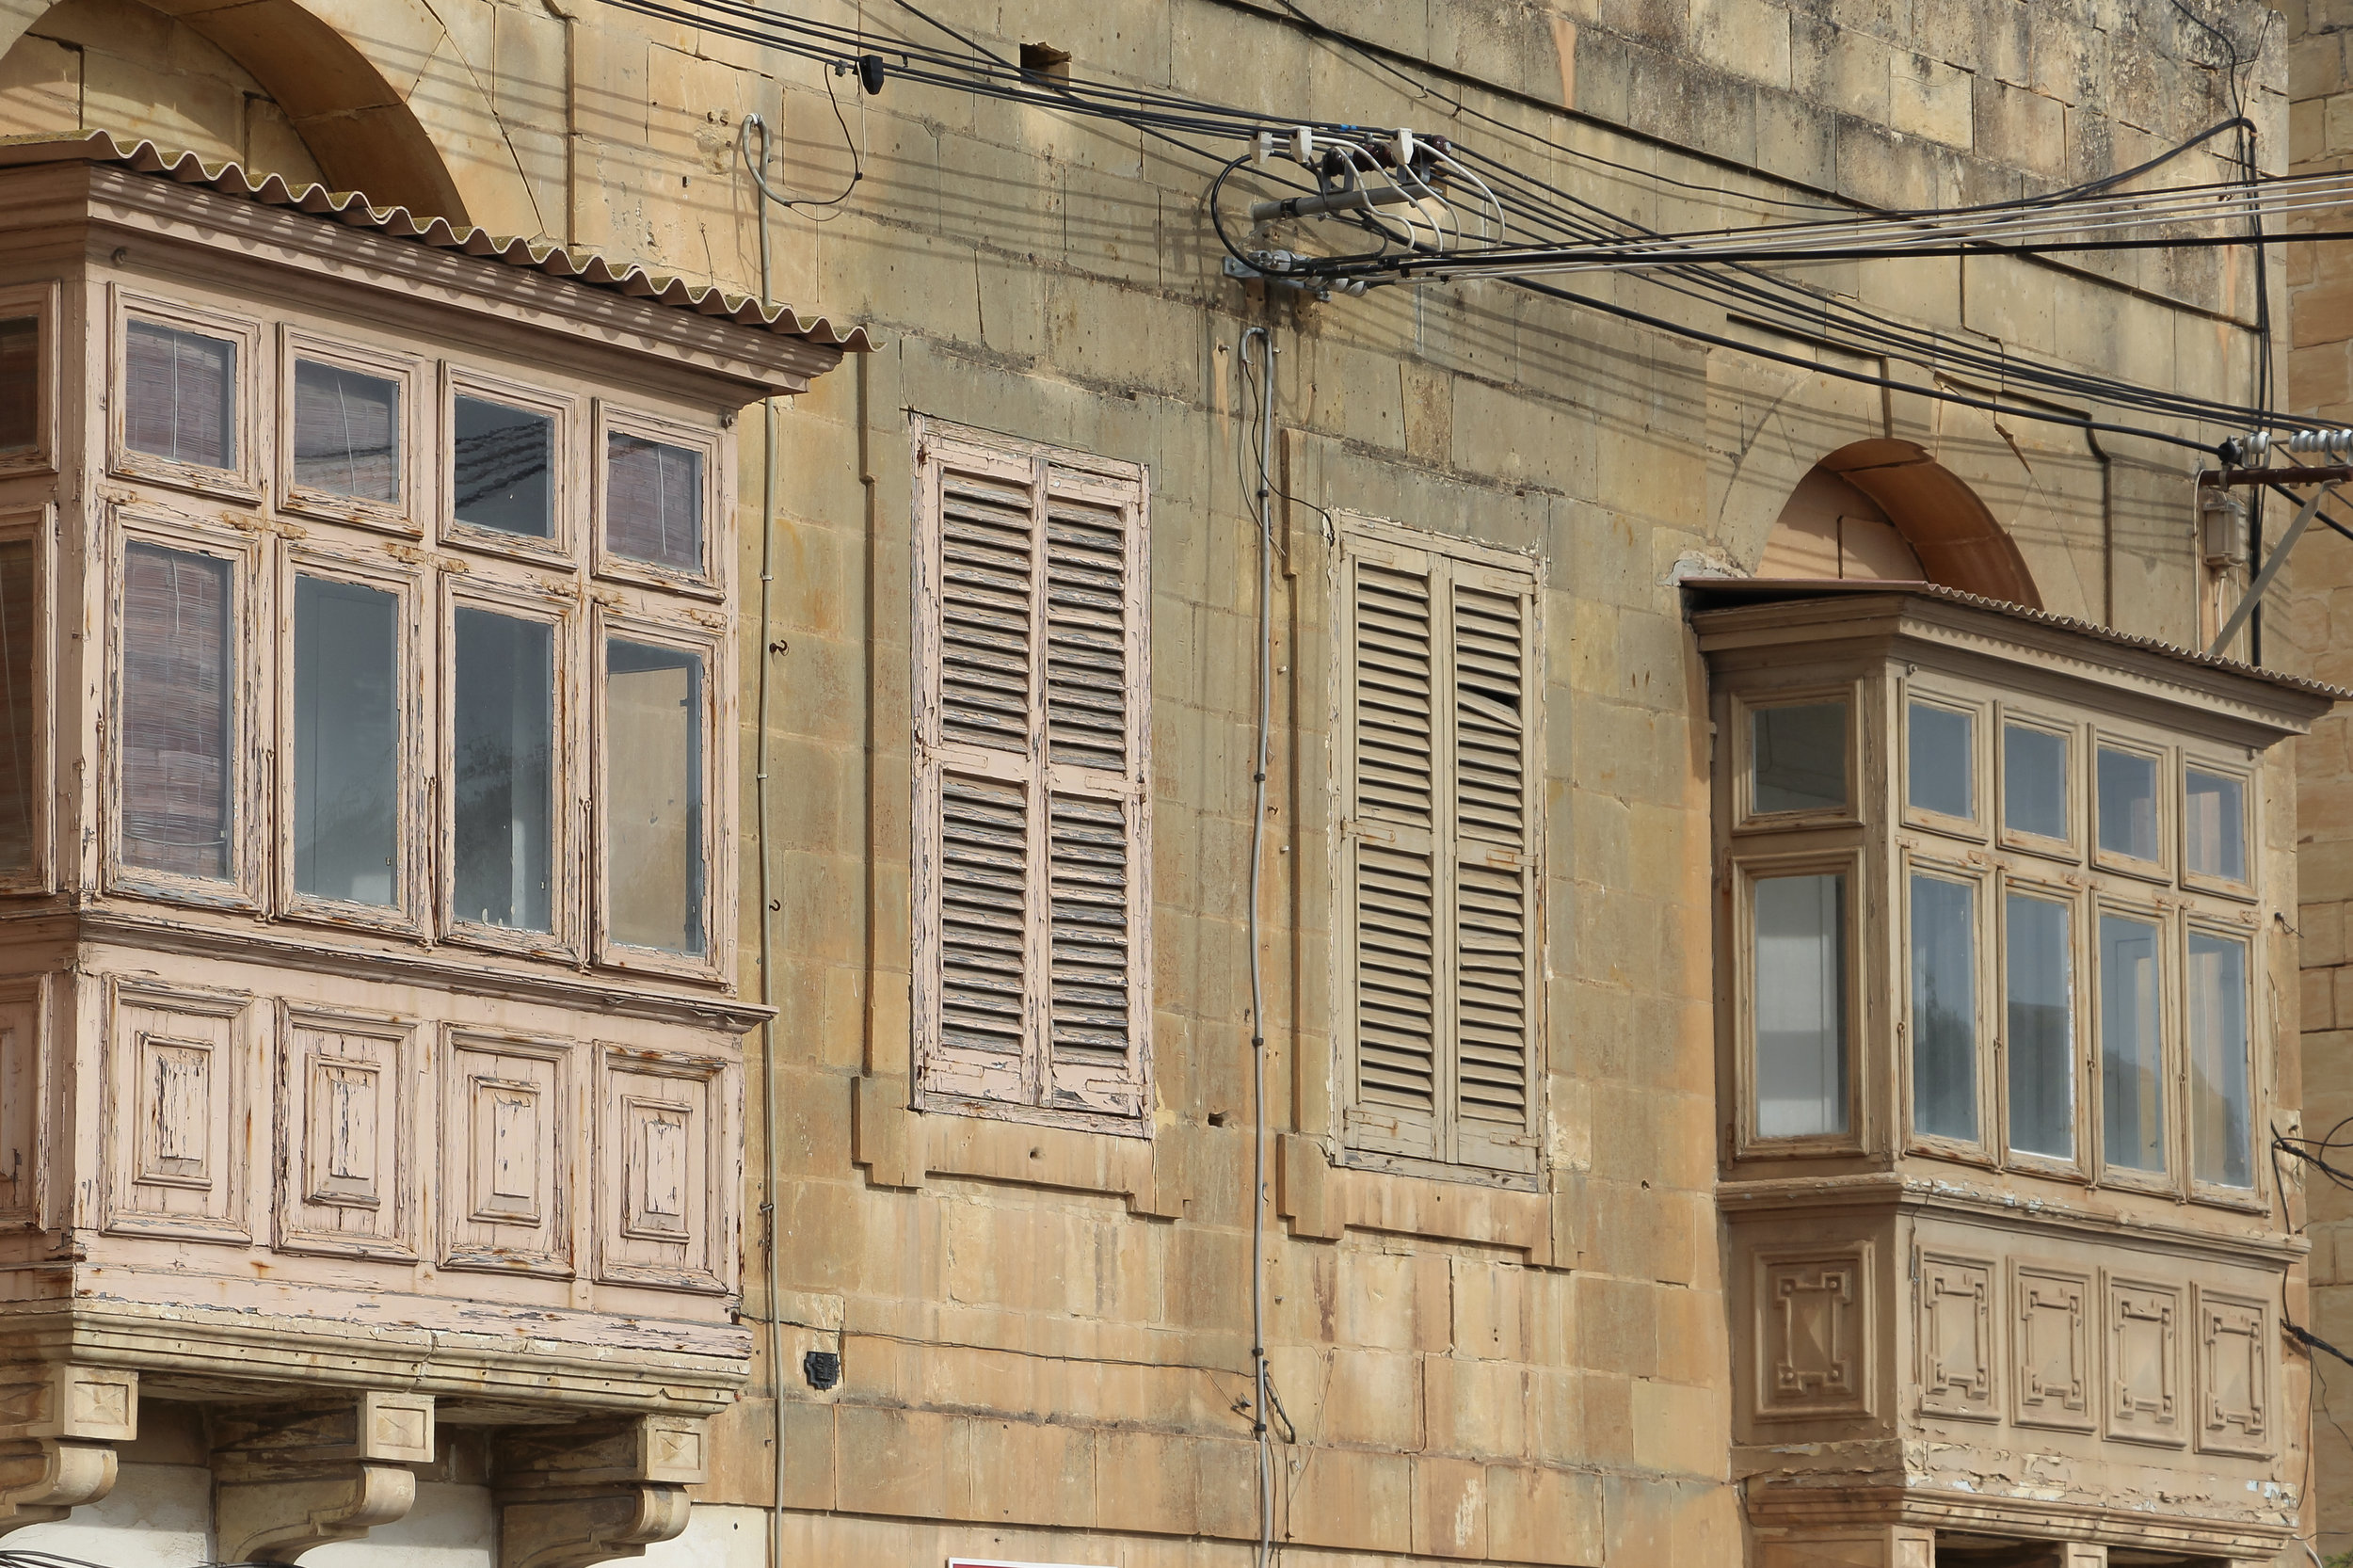 Maltese Architecture - Thinking About Appreciation For Quality In Malta | Gozo, Malta, Europe | DoLessGetMoreDone.com | - Canon Minimal Travel Documentary Photography - search for Liveability | Sustainability